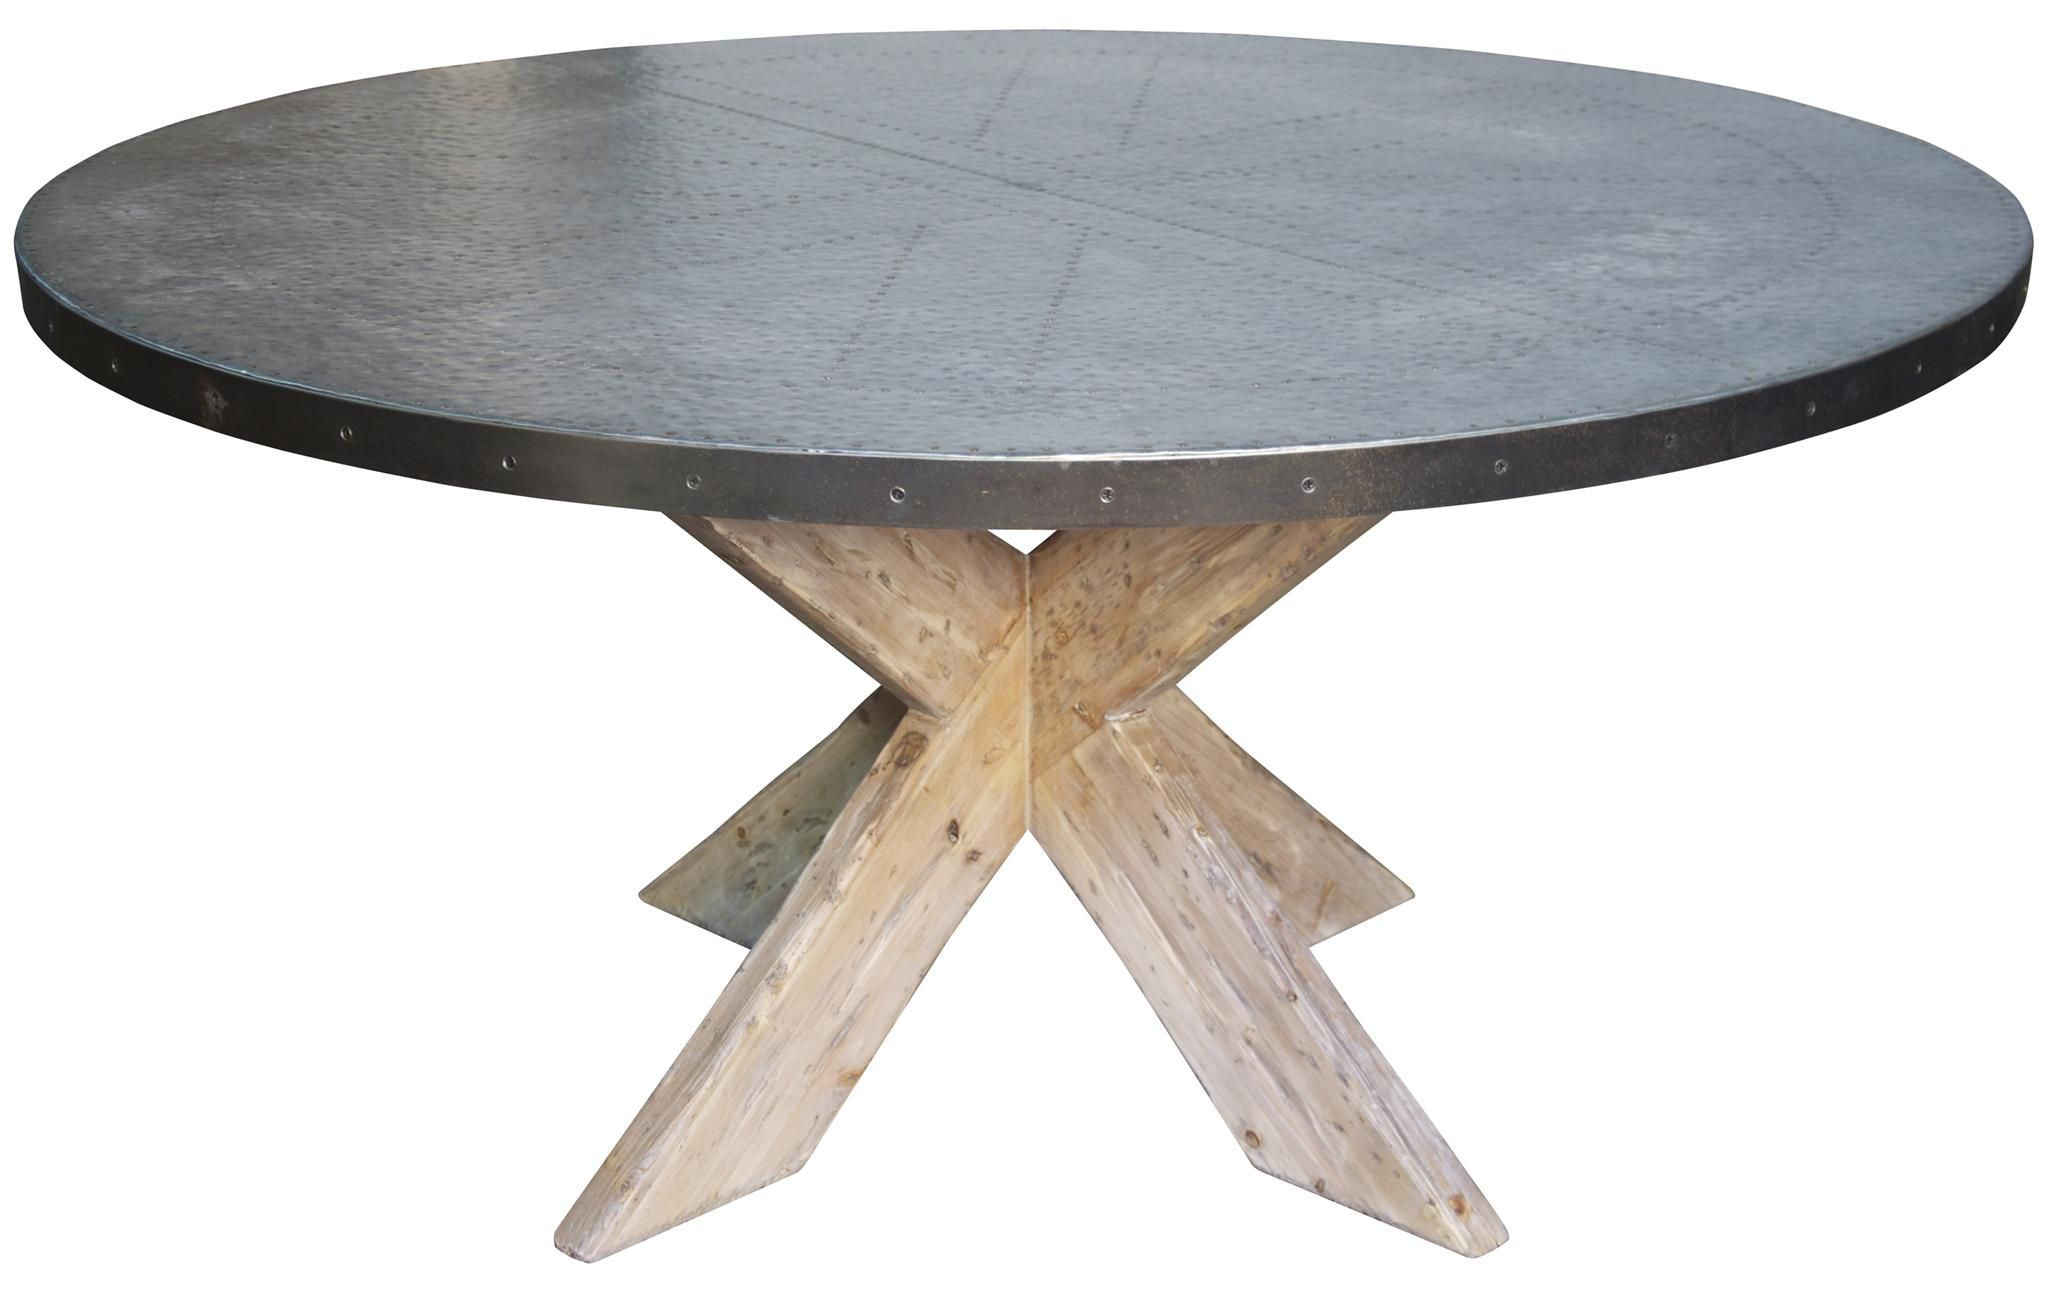 buy a custom hayward zinc top round dining table with x base, made